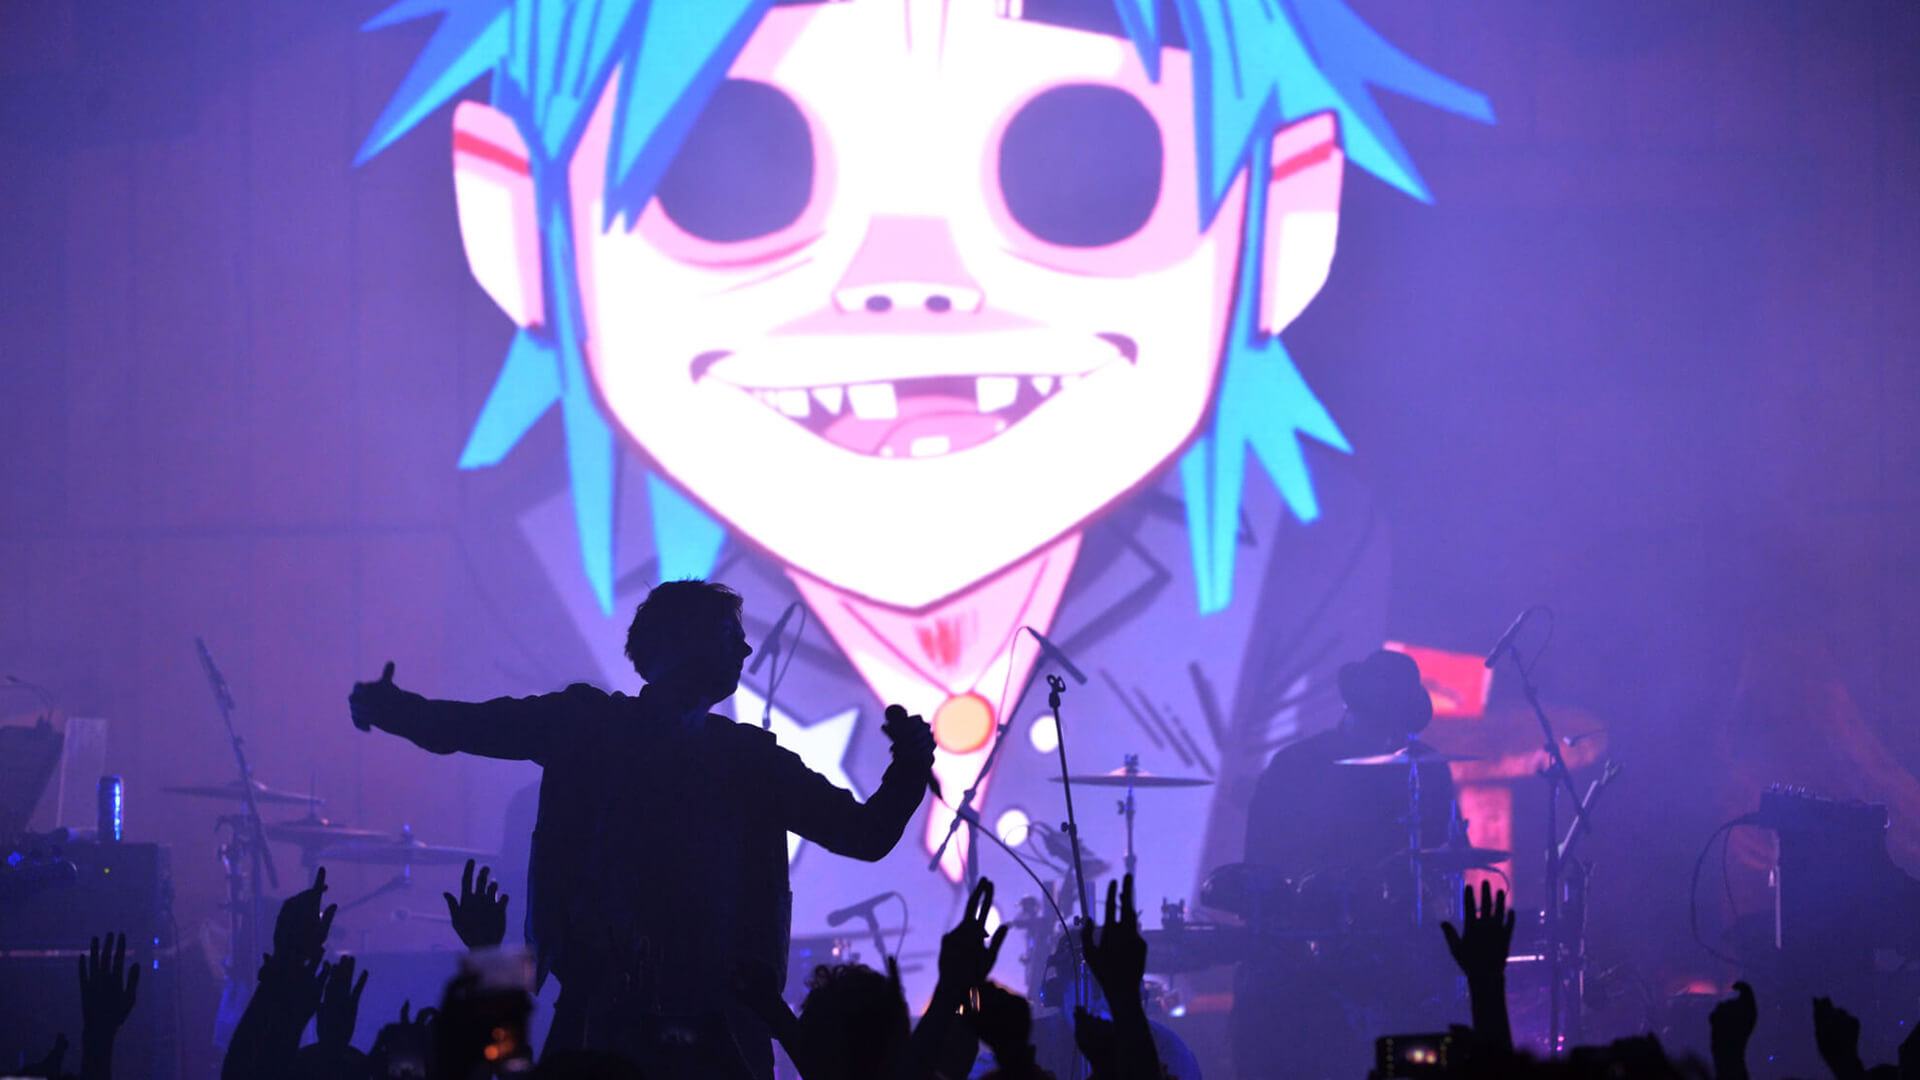 MA_Gorillaz_Humanz_014-copy_PHOTO-CREDIT_MARK-ALLAN